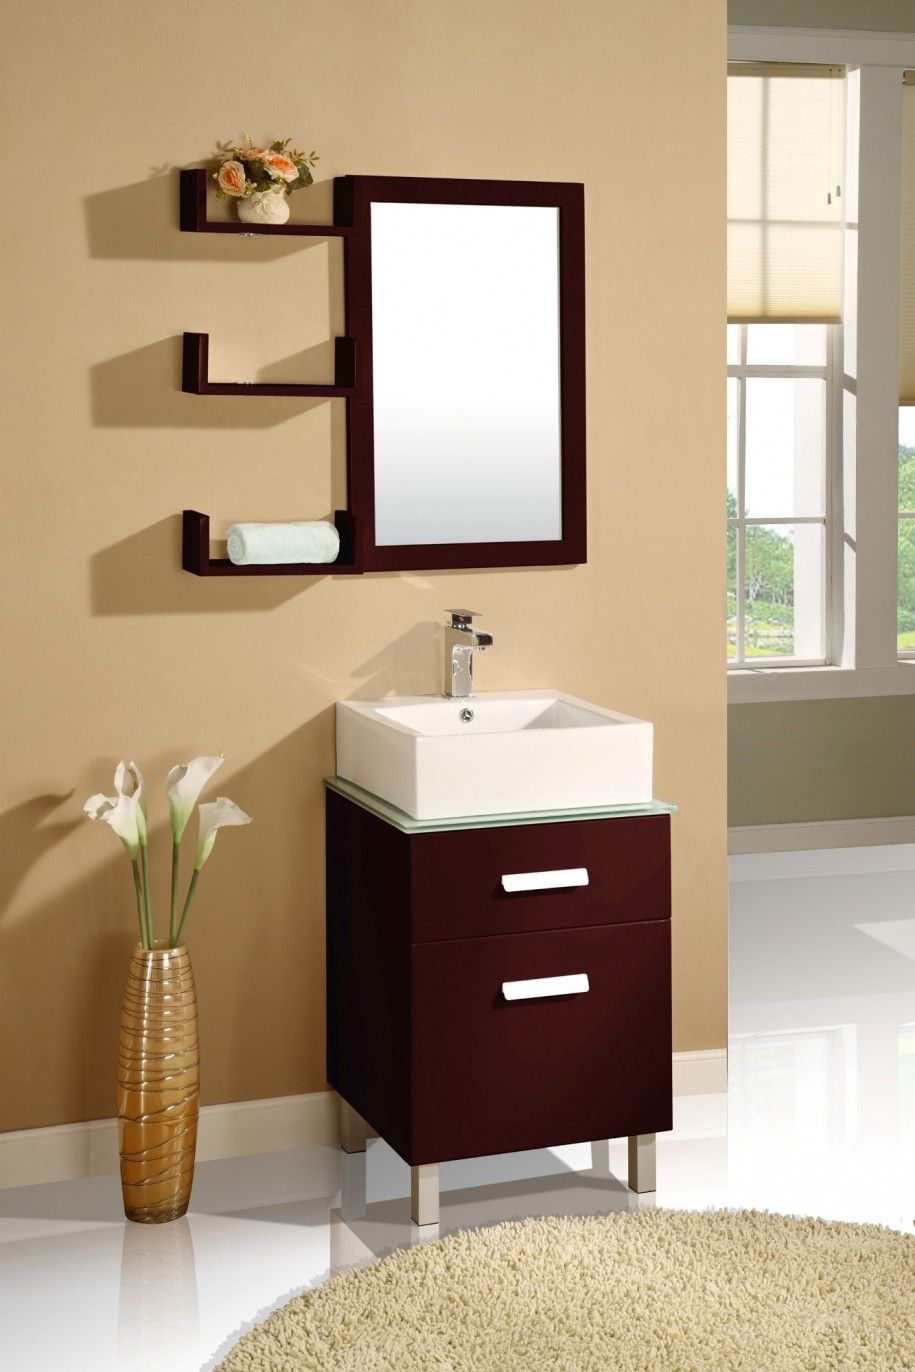 Modern bathroom medicine cabinets -  Wood Vanity Cabinet And White Wash Basin For Contemporary Bathroom Accessories Add Bathroom Medicine Cabinet For Modern Bathroom Bathroom Inspiration